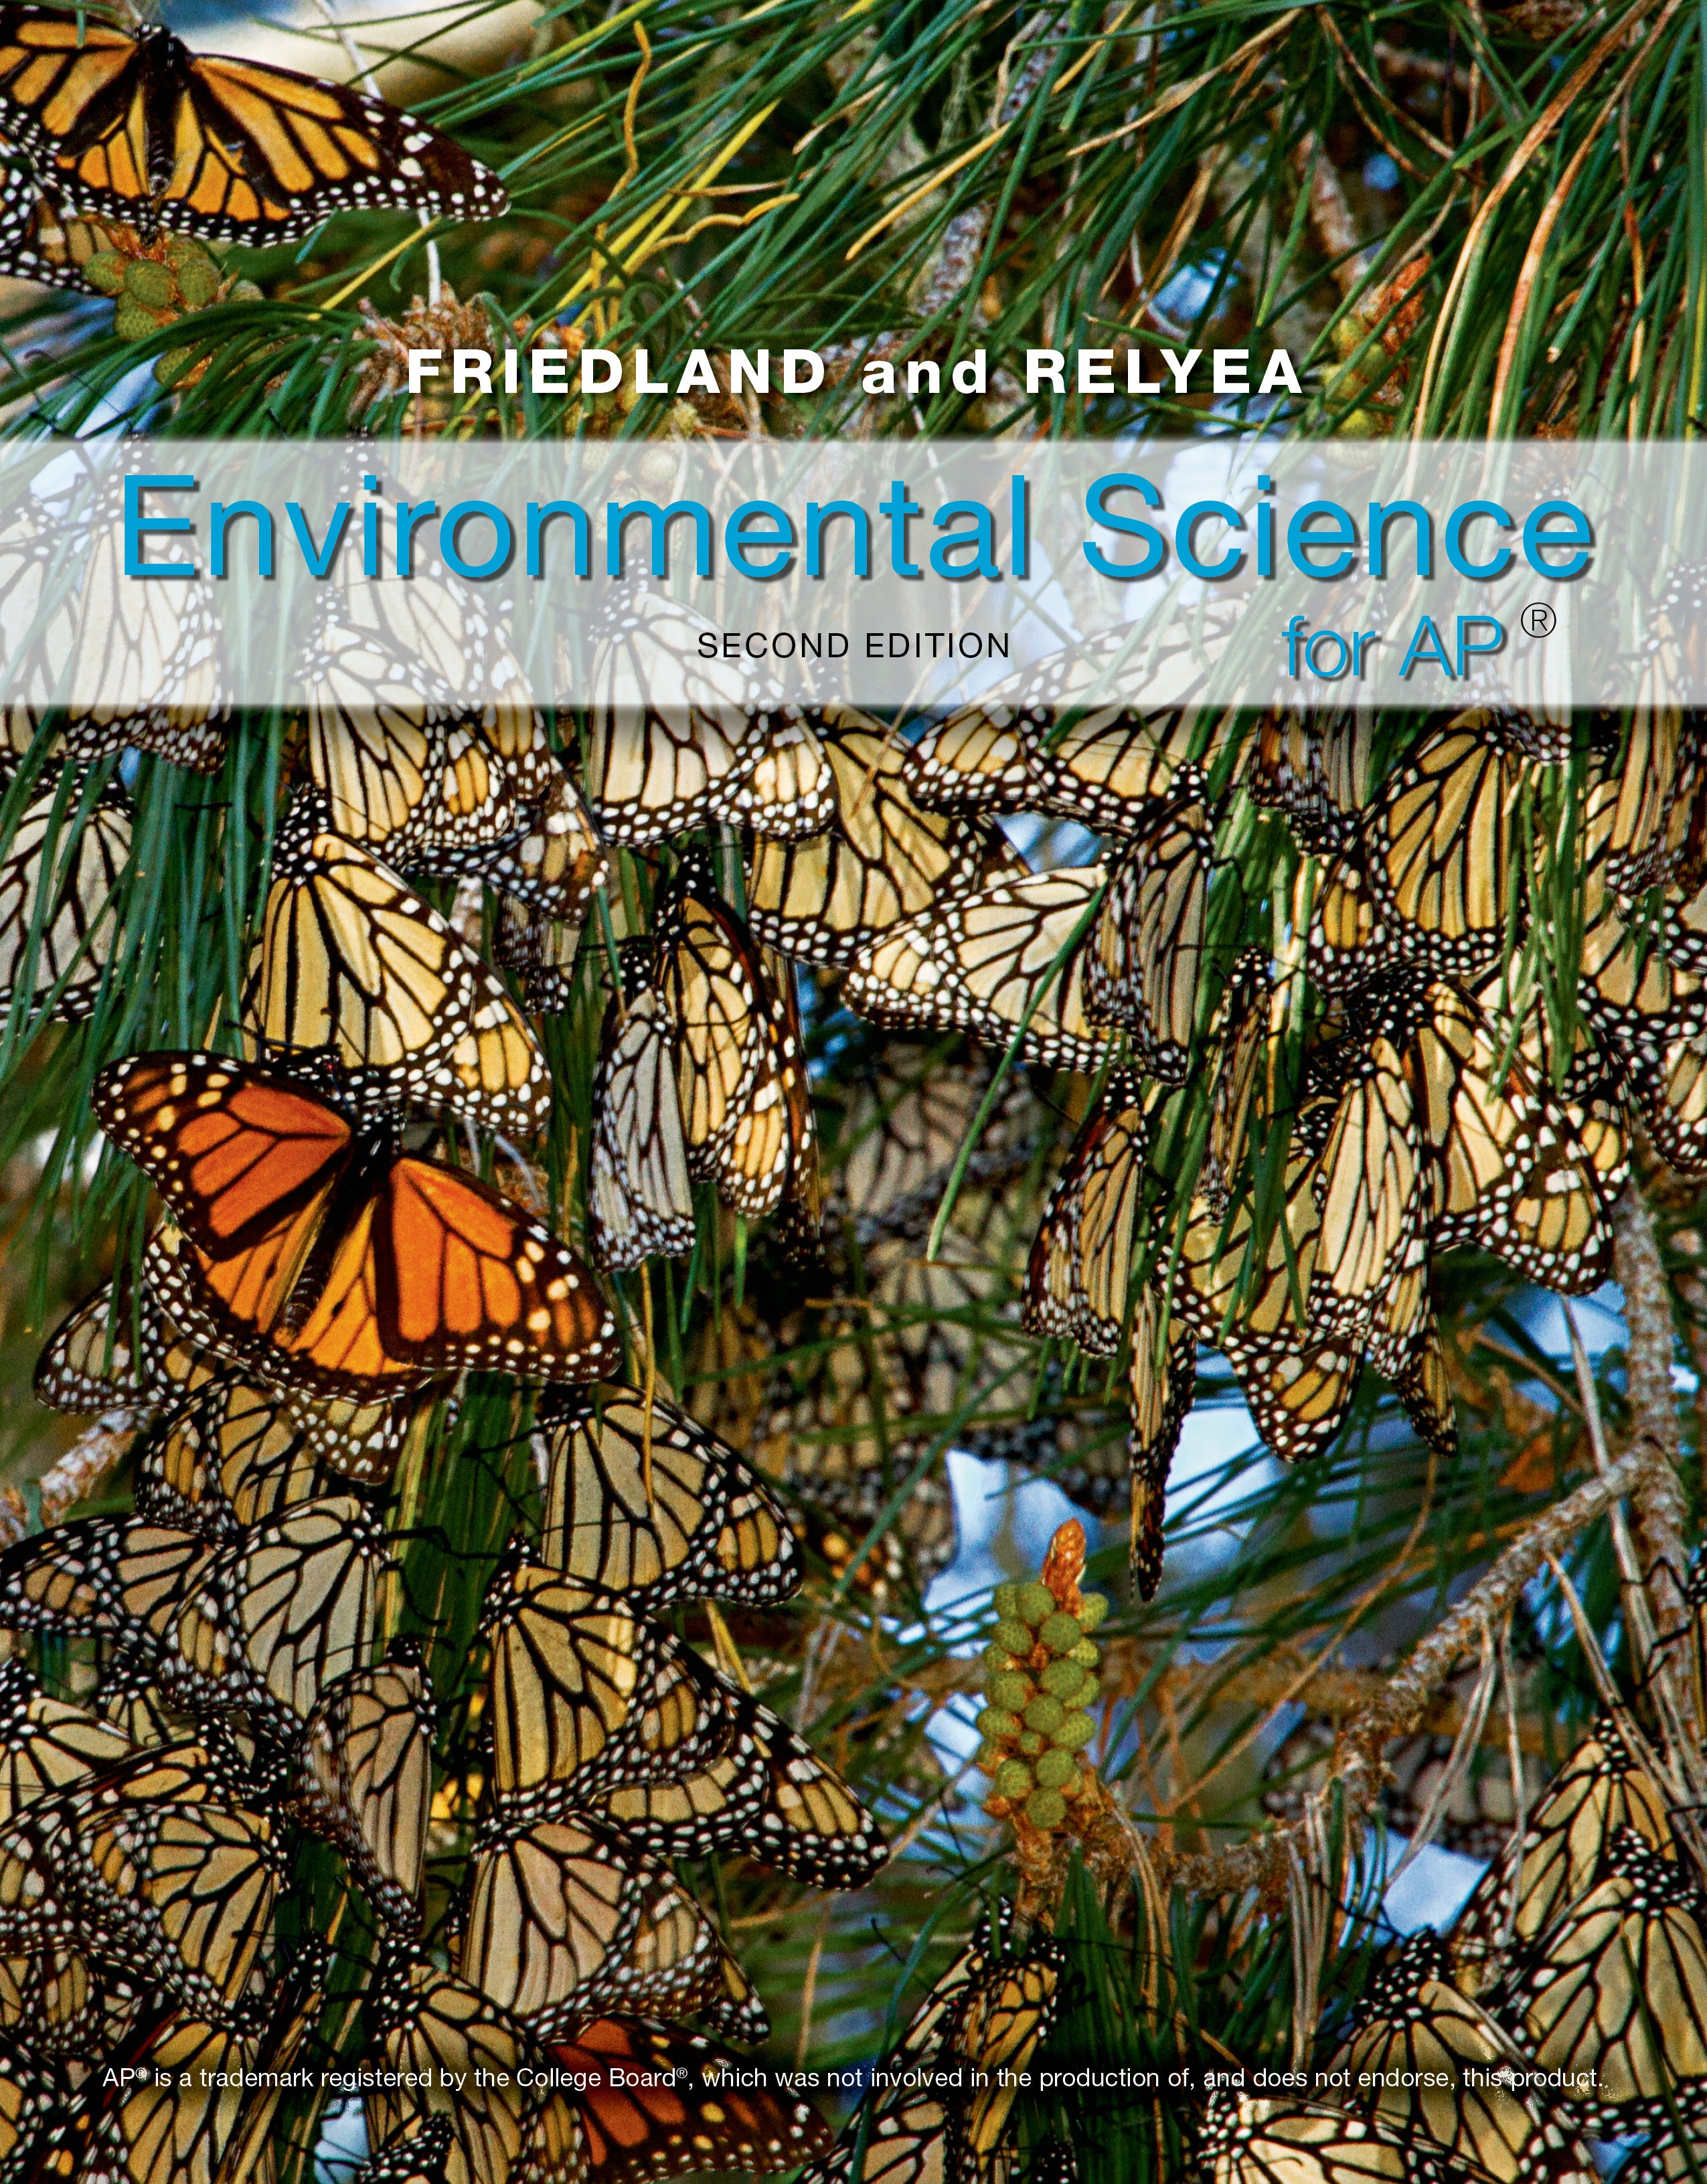 ap environmental essay answers Ap® environmental science write all your answers on the pages following the questions in the pink booklet 2003 ap environmental science free-response questions.